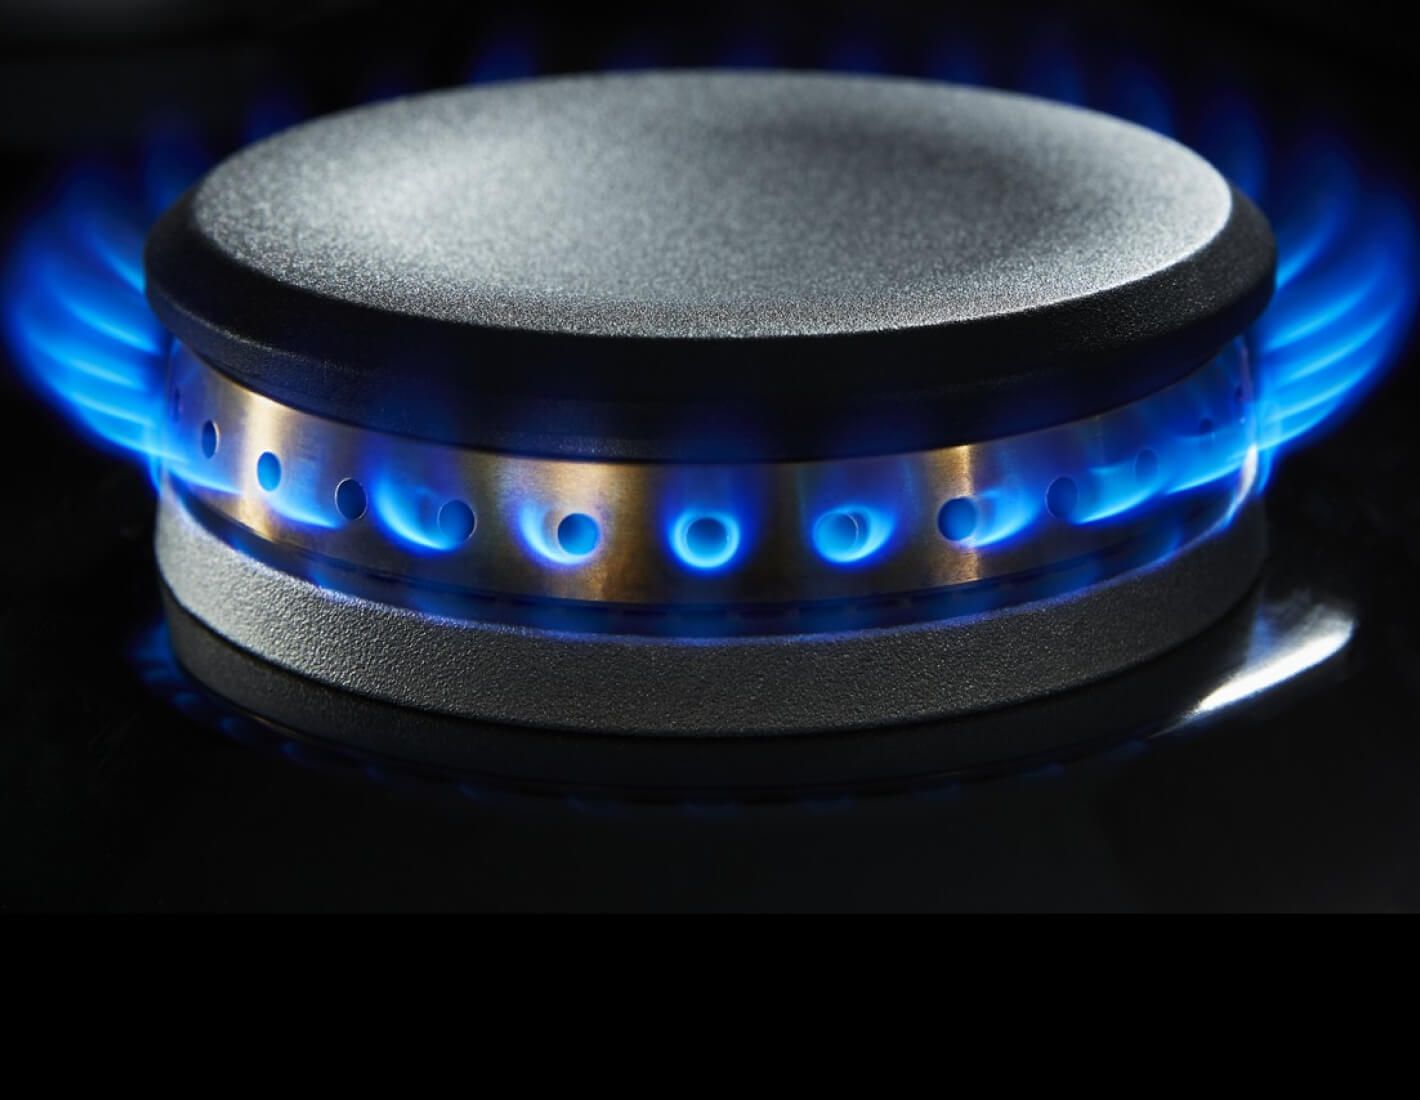 A lit dual-stacked burner.